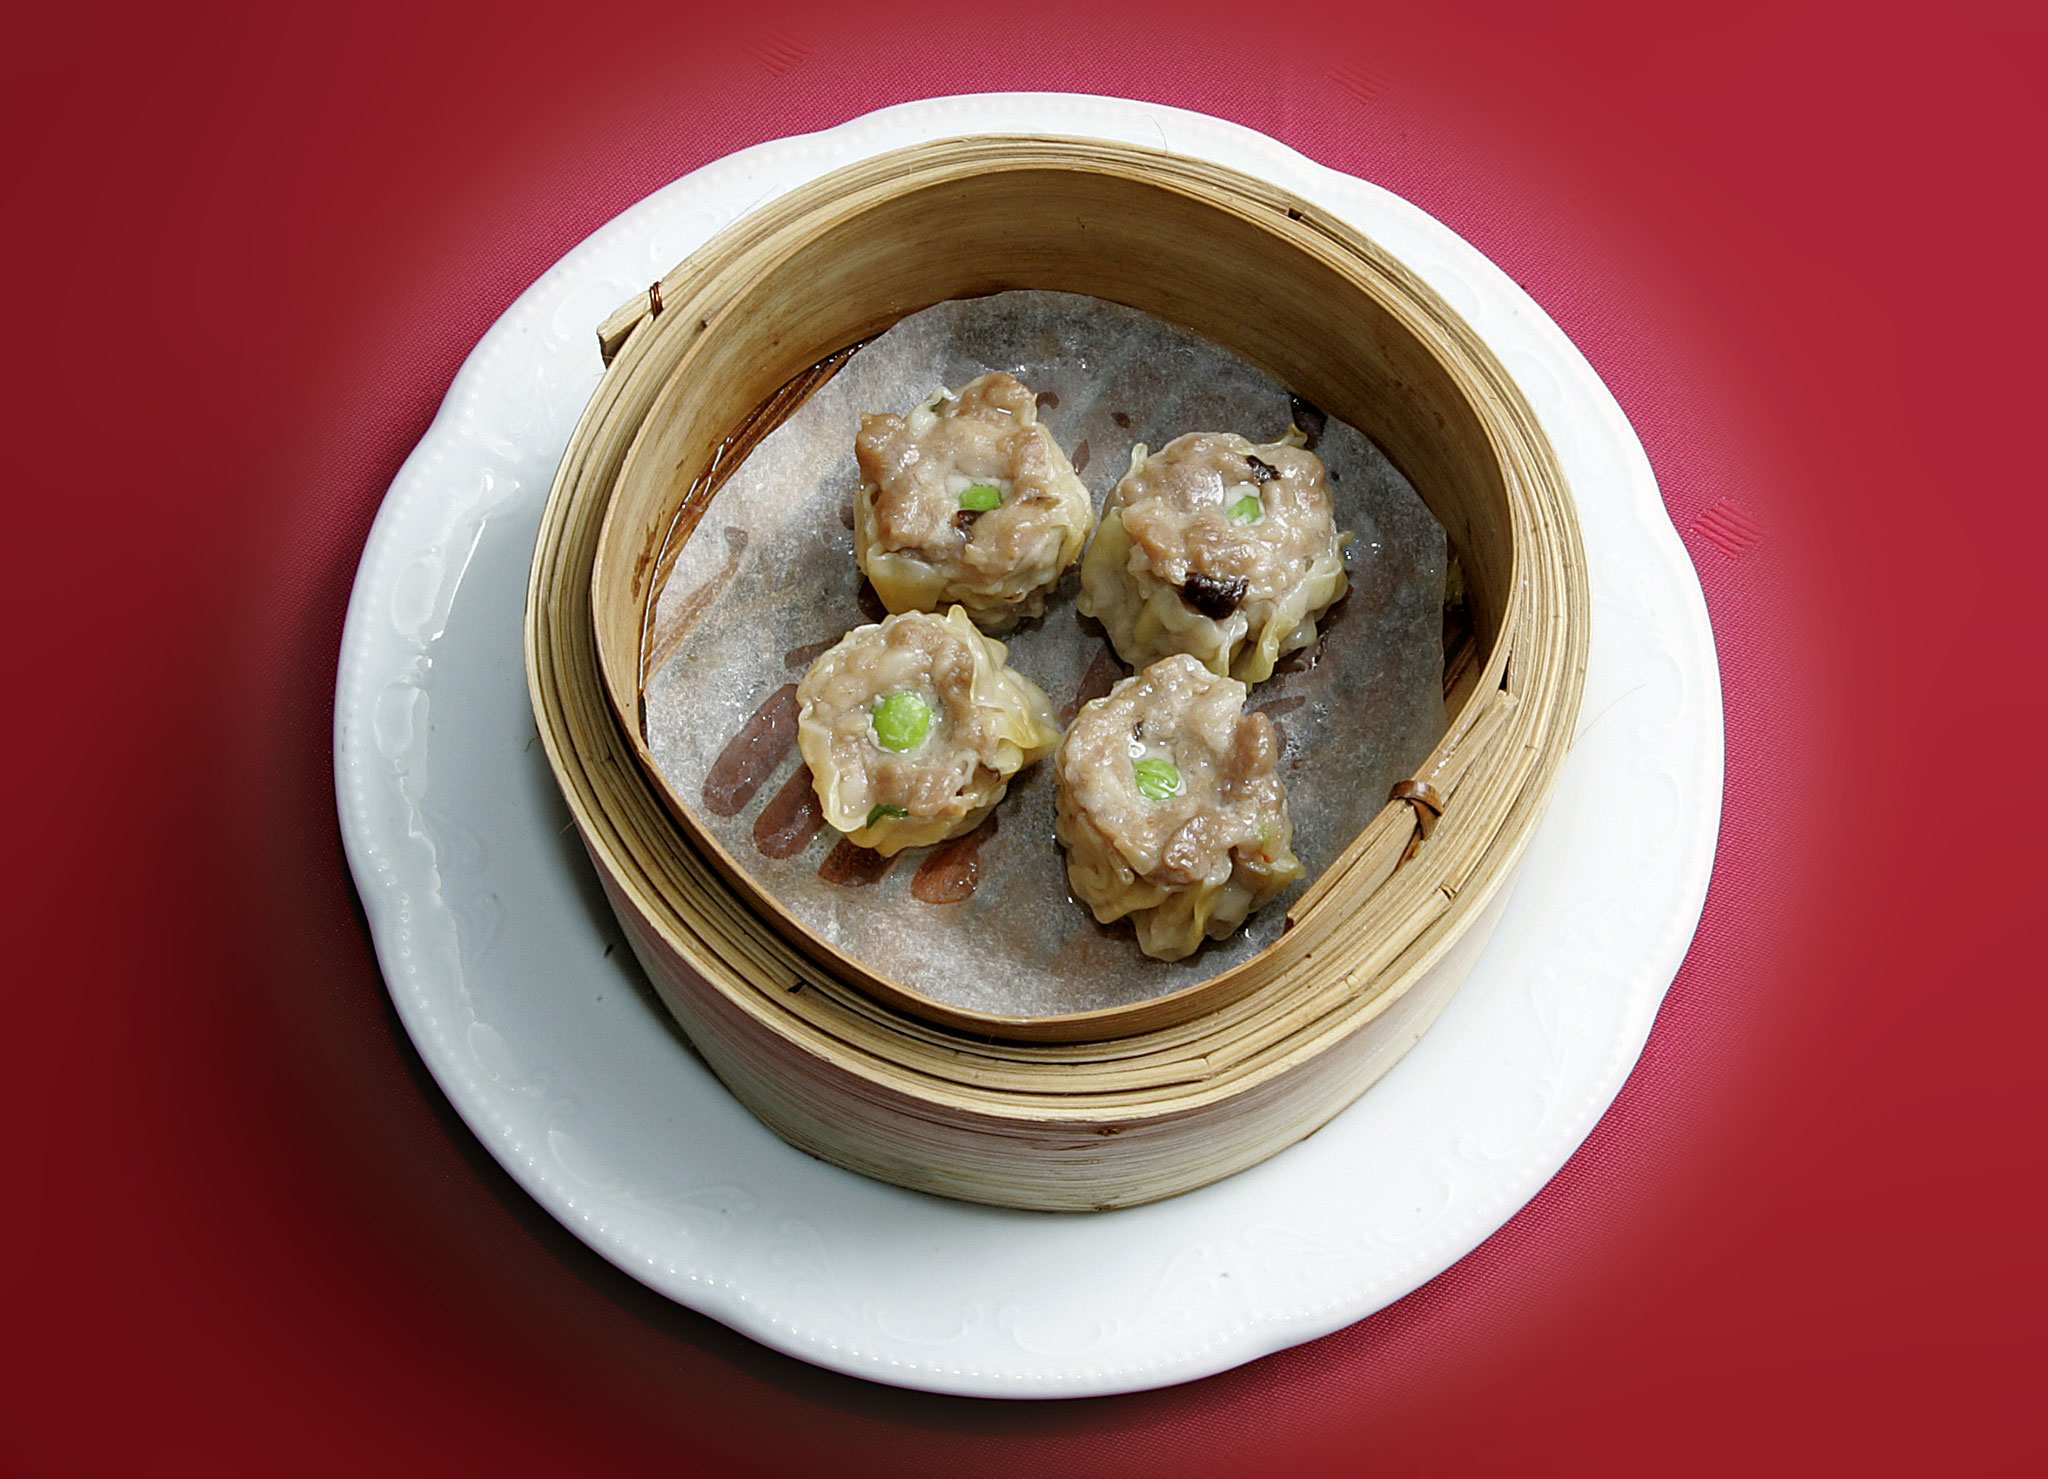 Shao-Mai (Steamed Pork and Shrimp Dumpling)